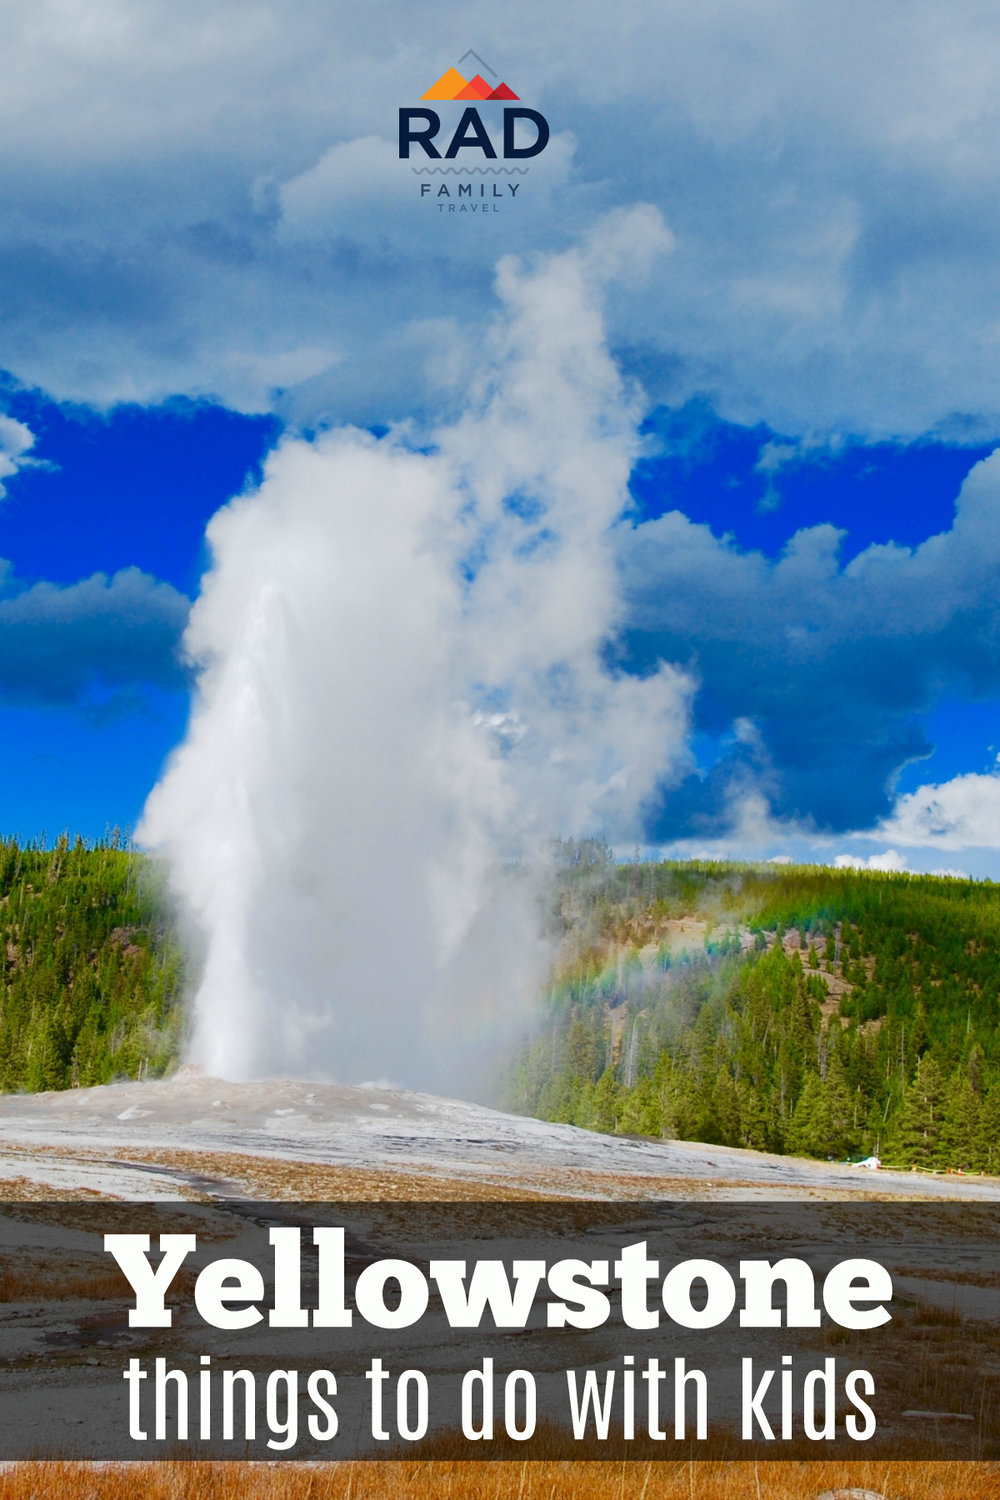 yellowstone-things-to-do-family-vacation